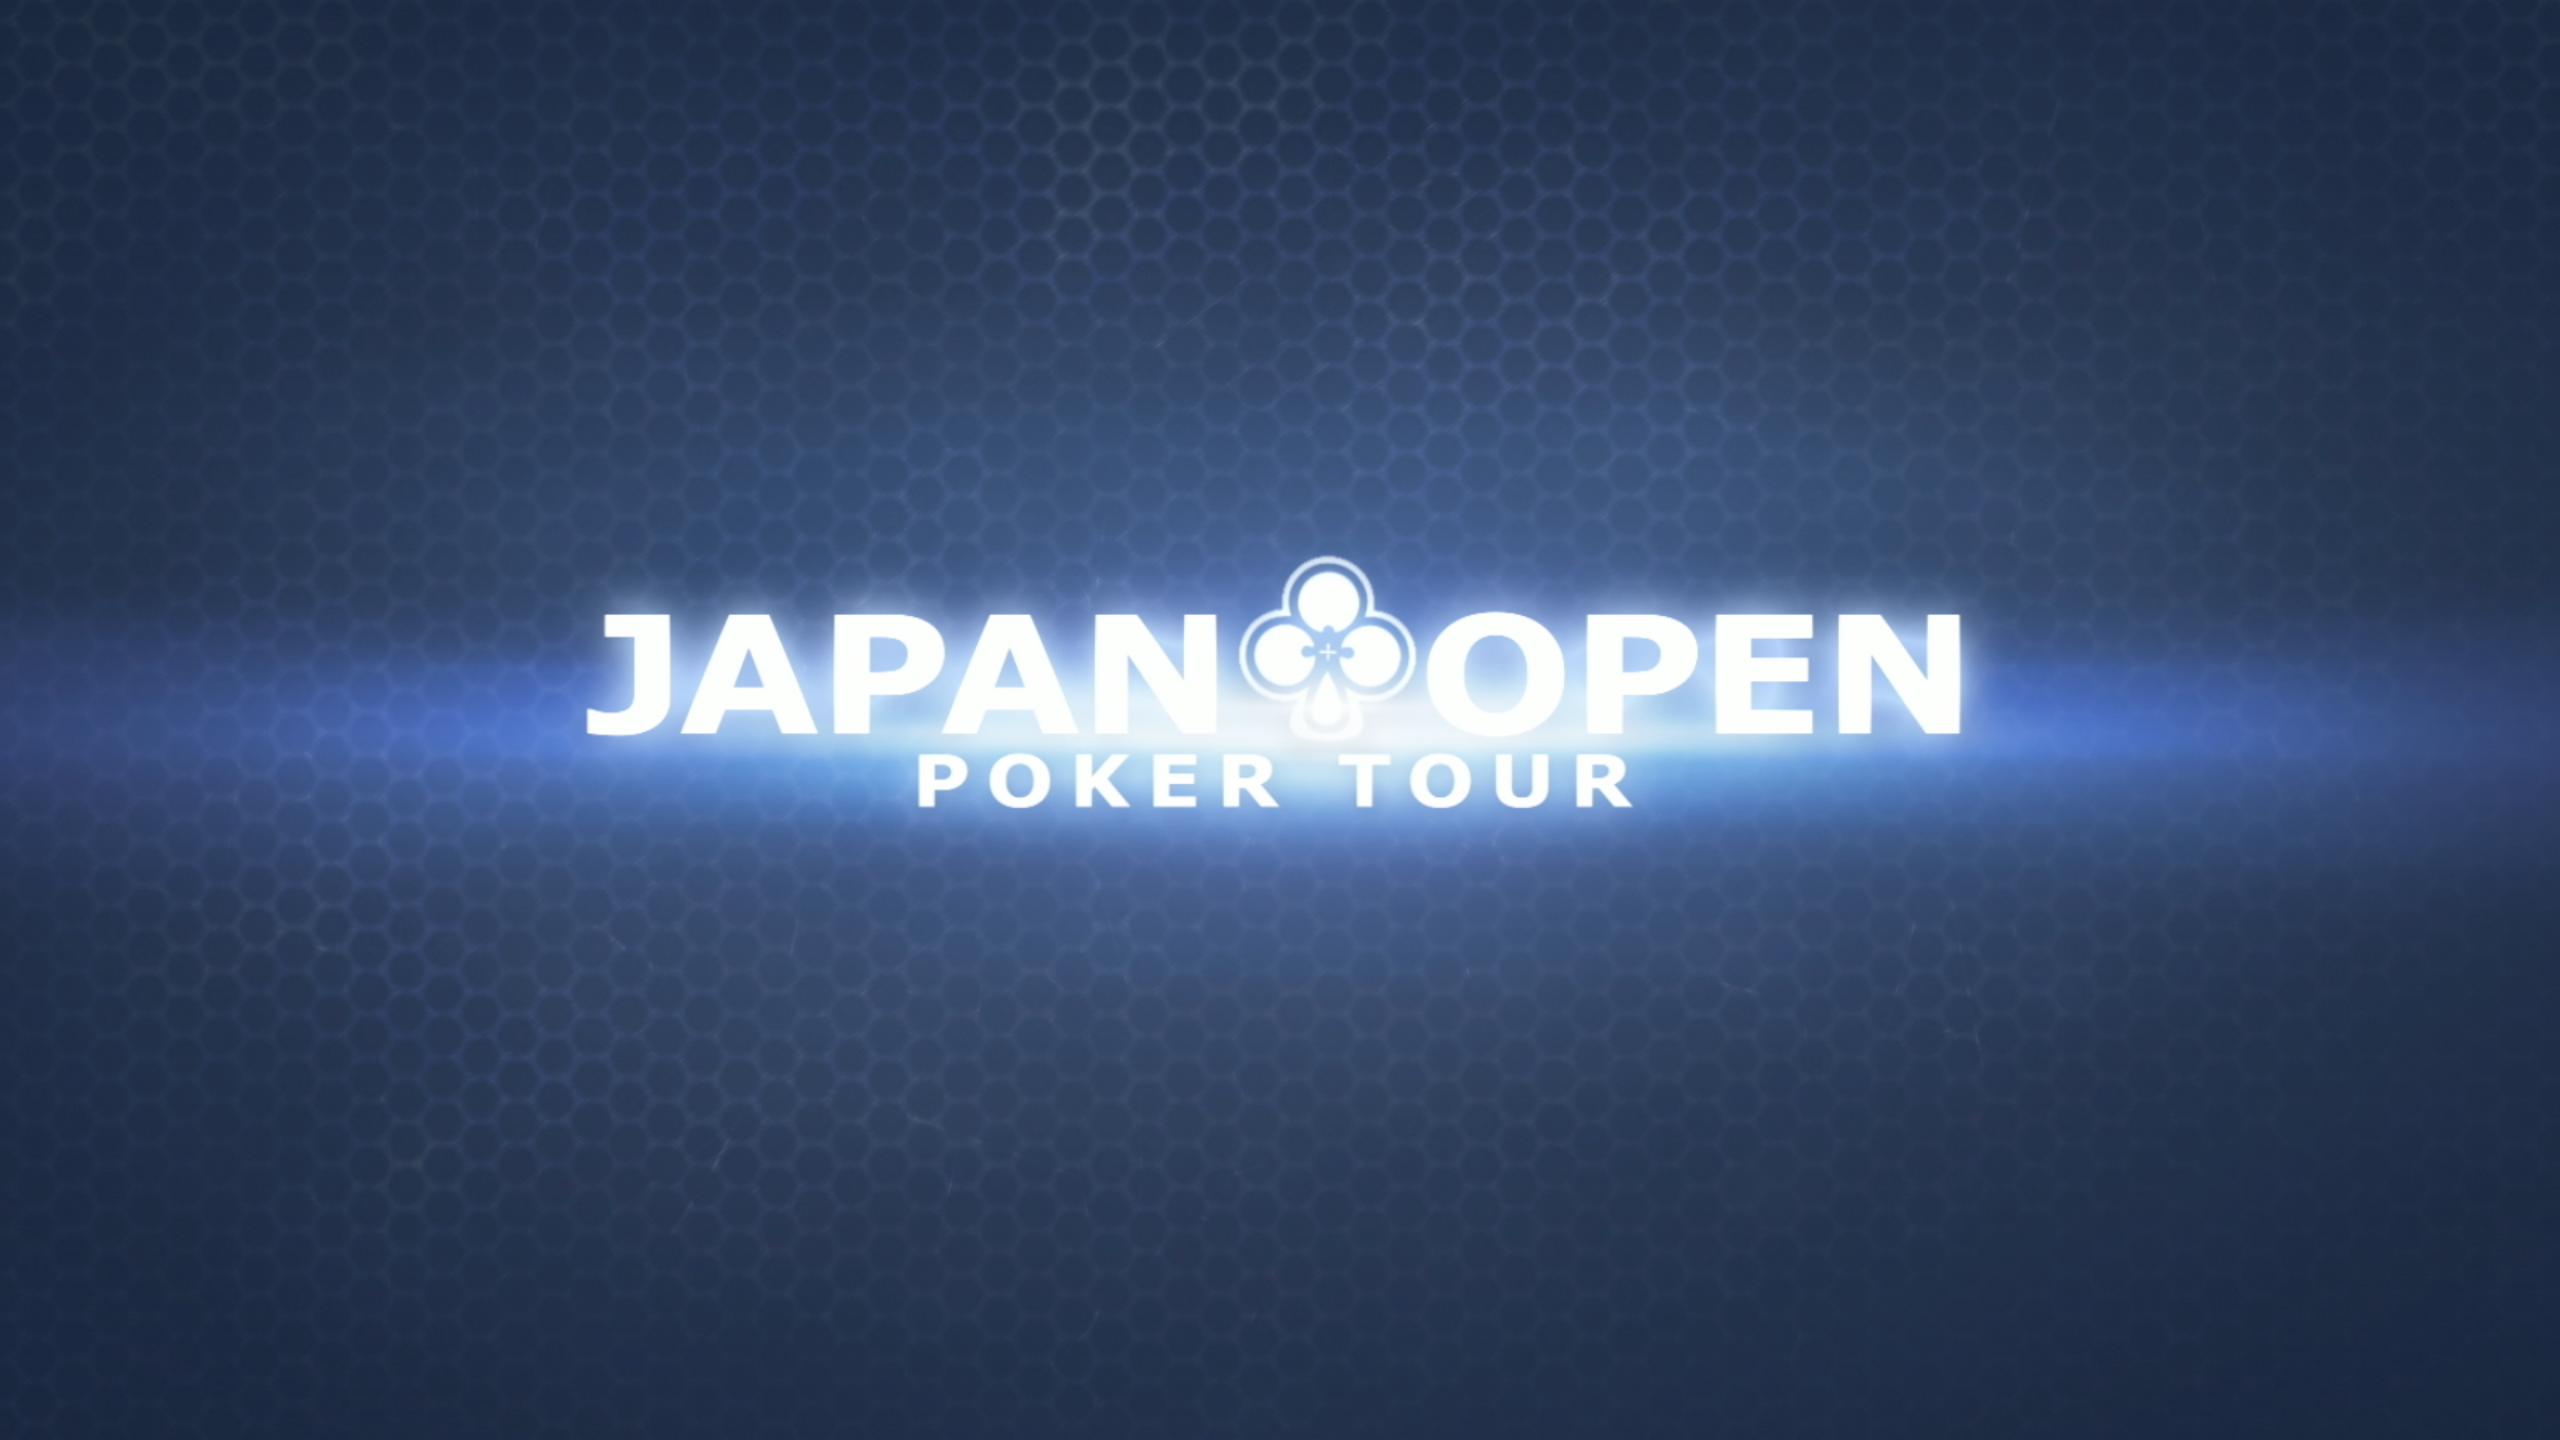 Japan Open Poker Tour- commercial